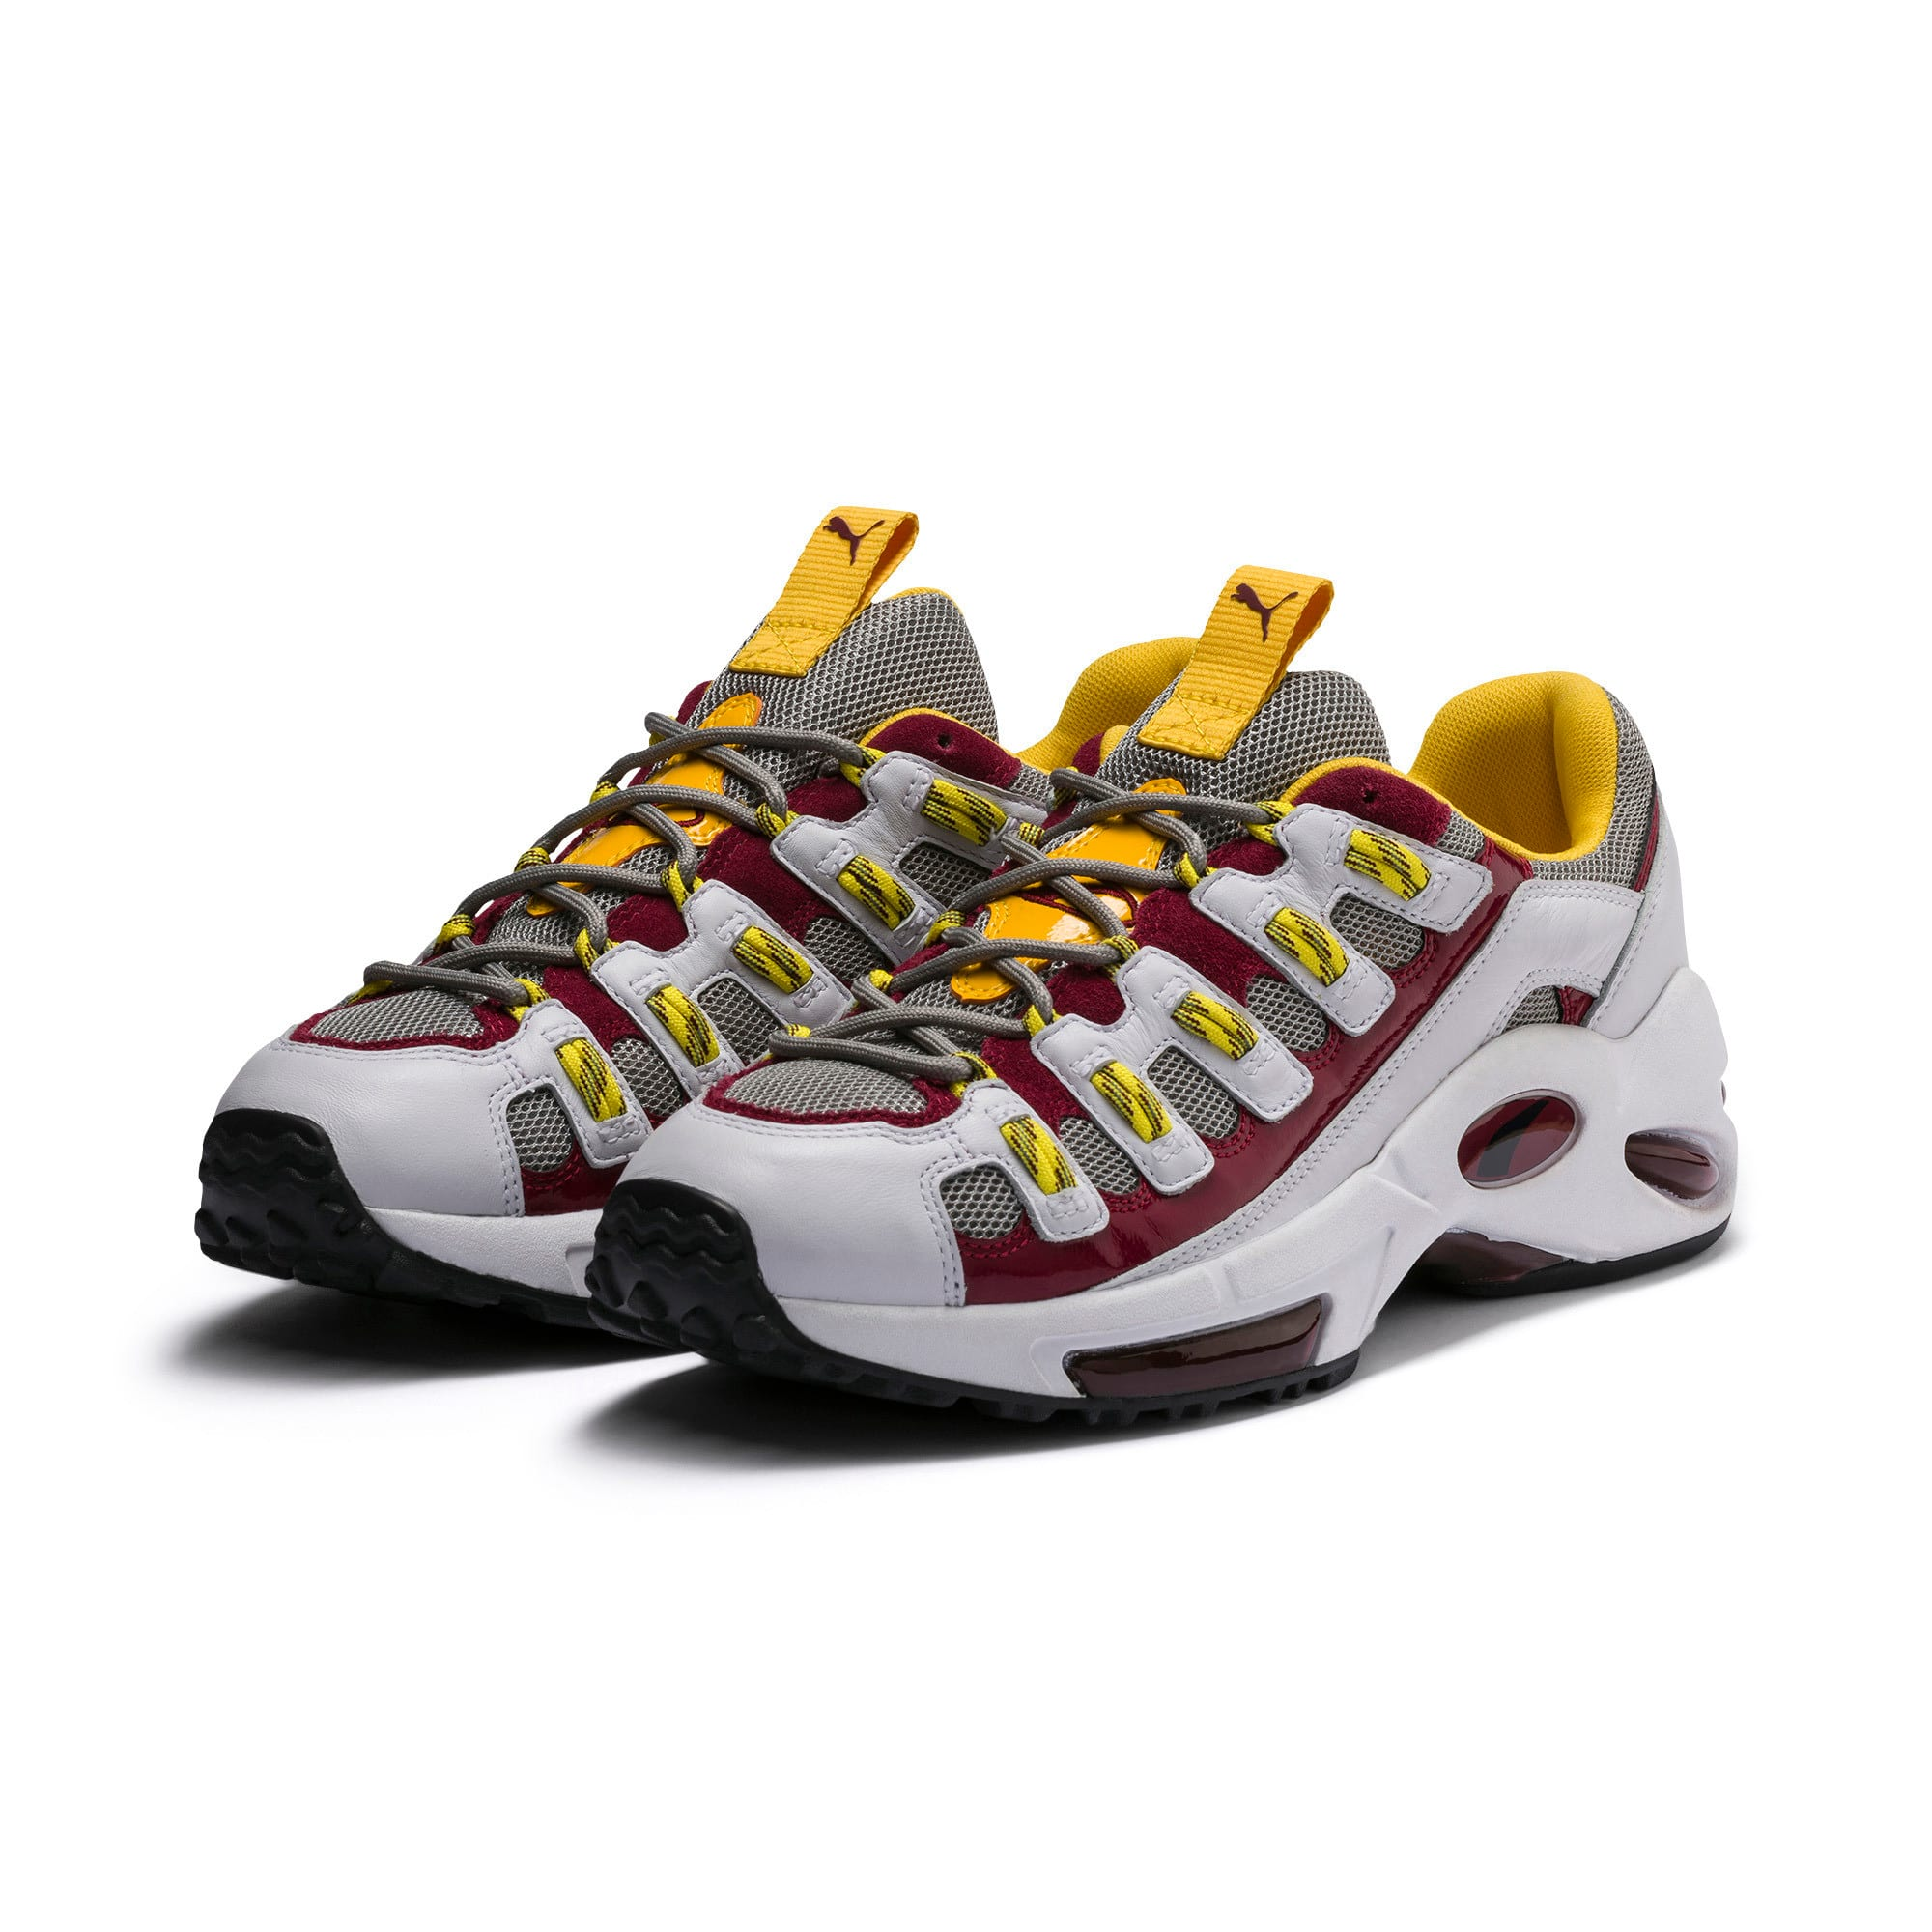 Cell Endura Patent 98 Trainers, Limestone-Cordovan, large